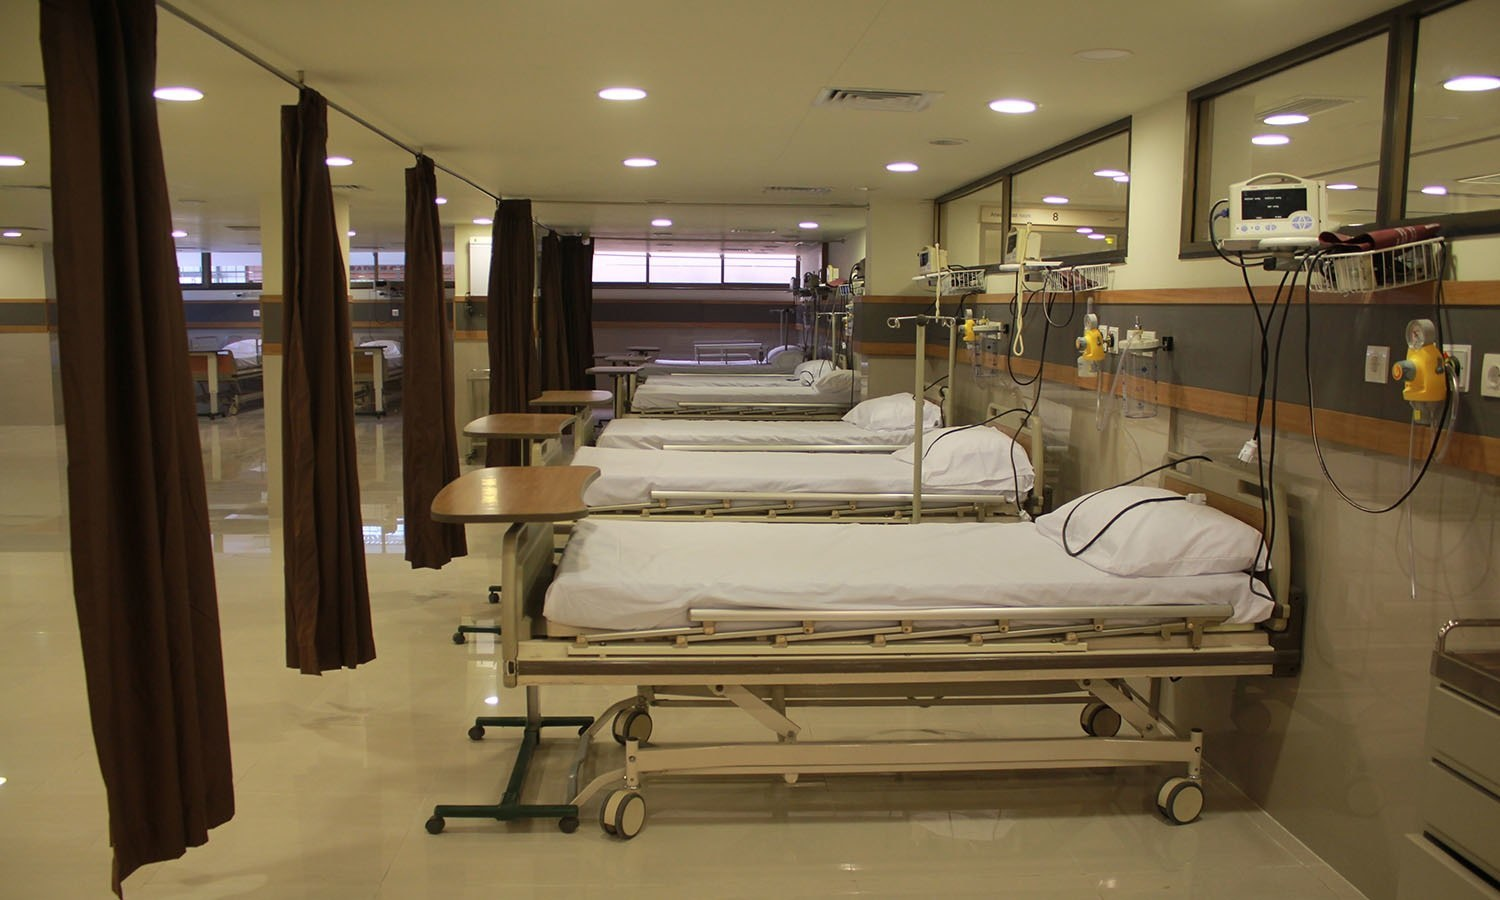 Hospitals under strain as Covid-19 peak approaches